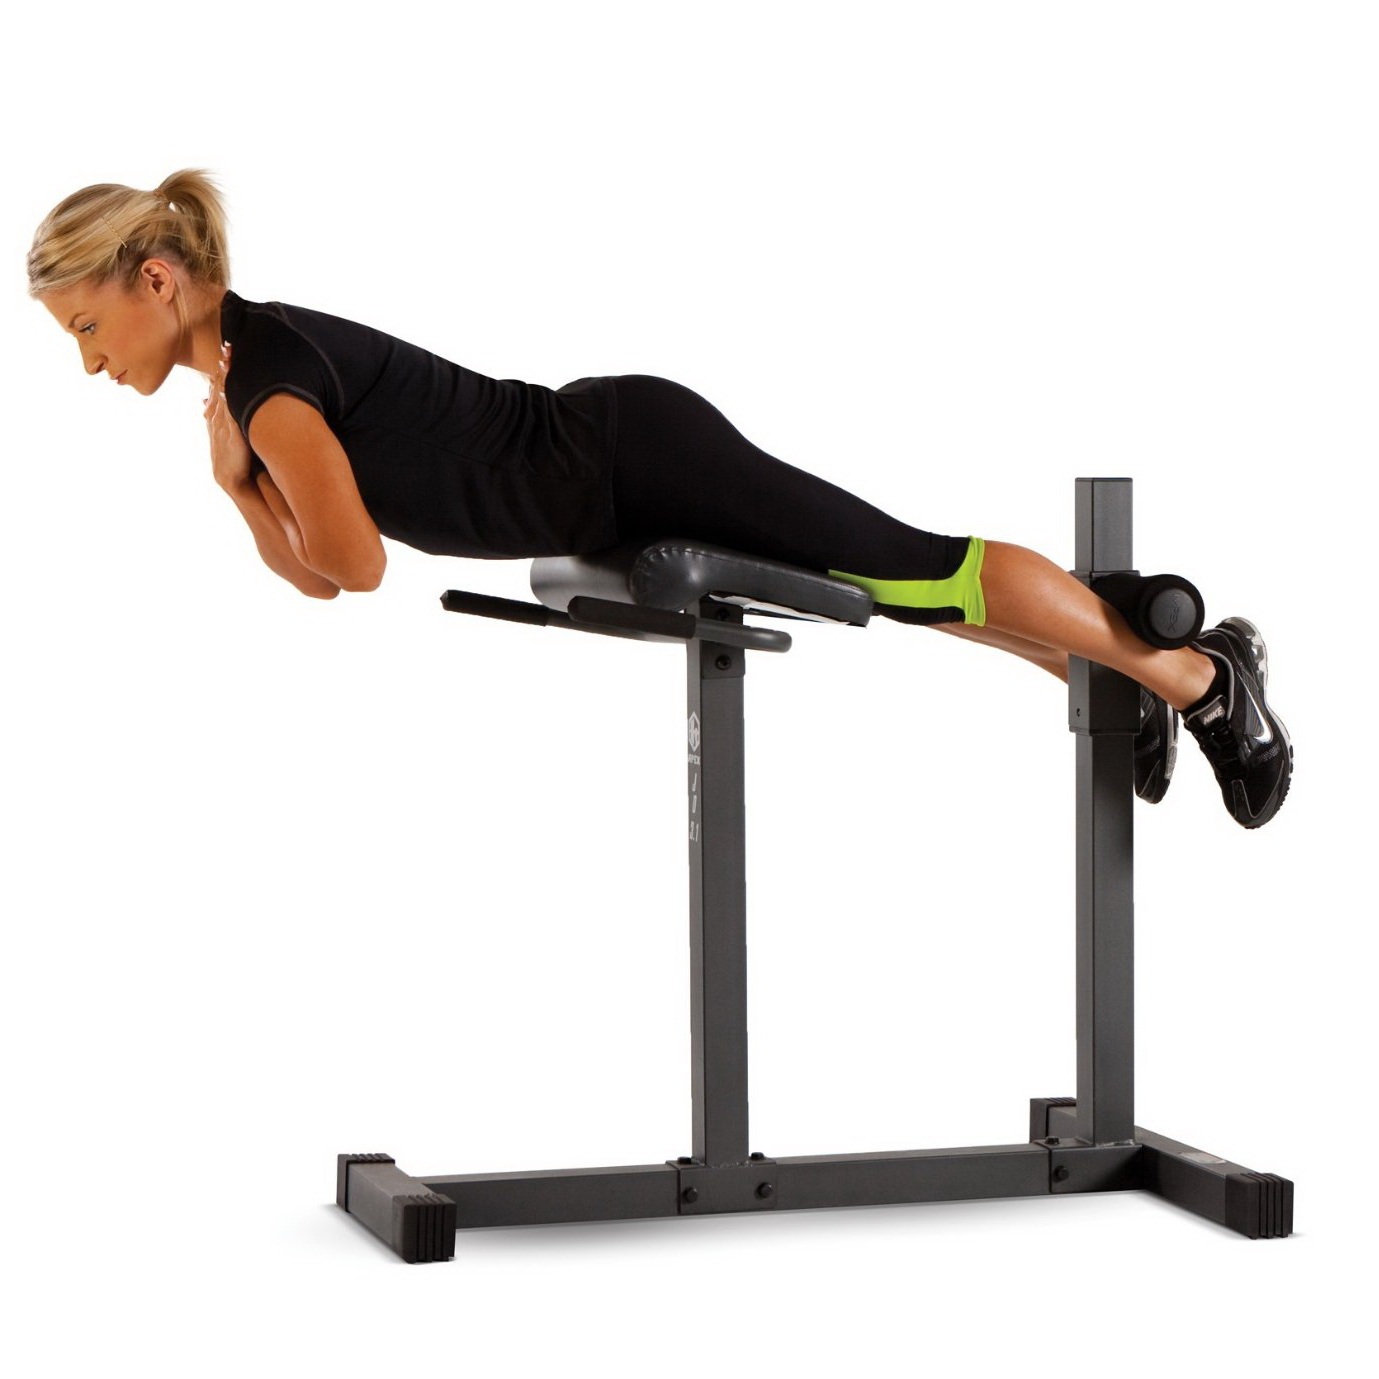 Marcy Hyper Extension Bench